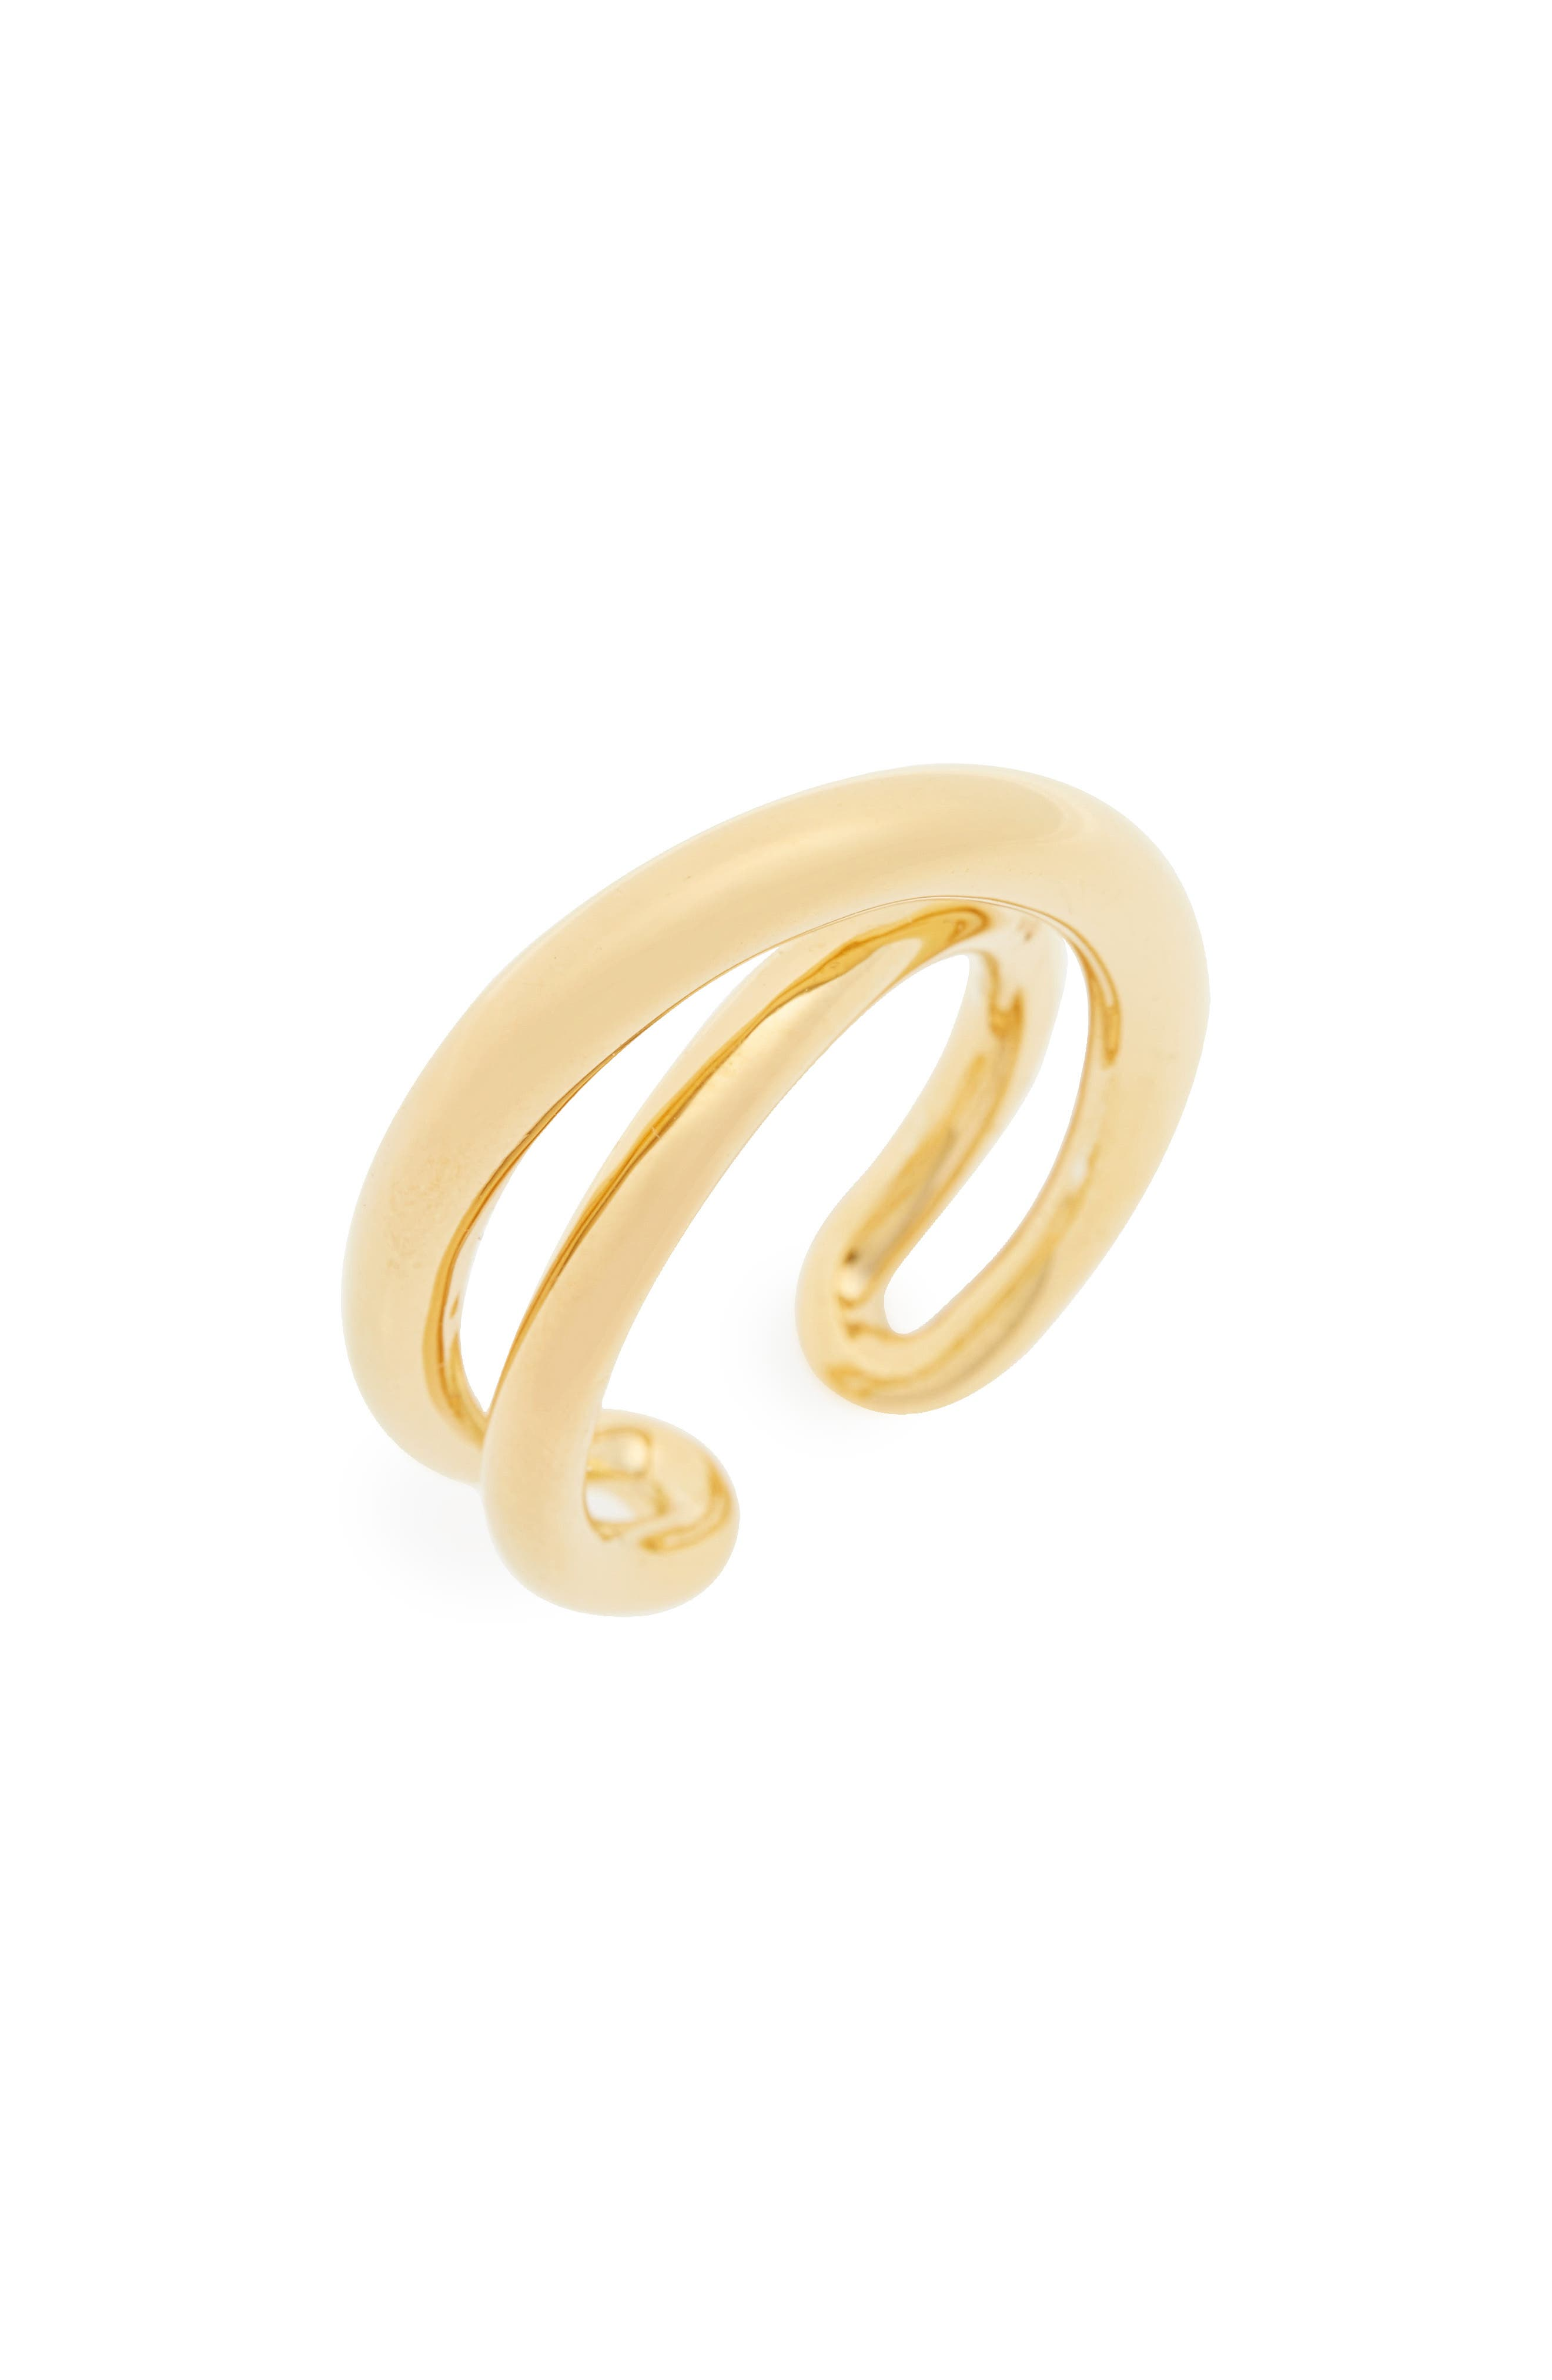 Index Initial Vermeil Open Ring,                         Main,                         color, Yellow Vermeil